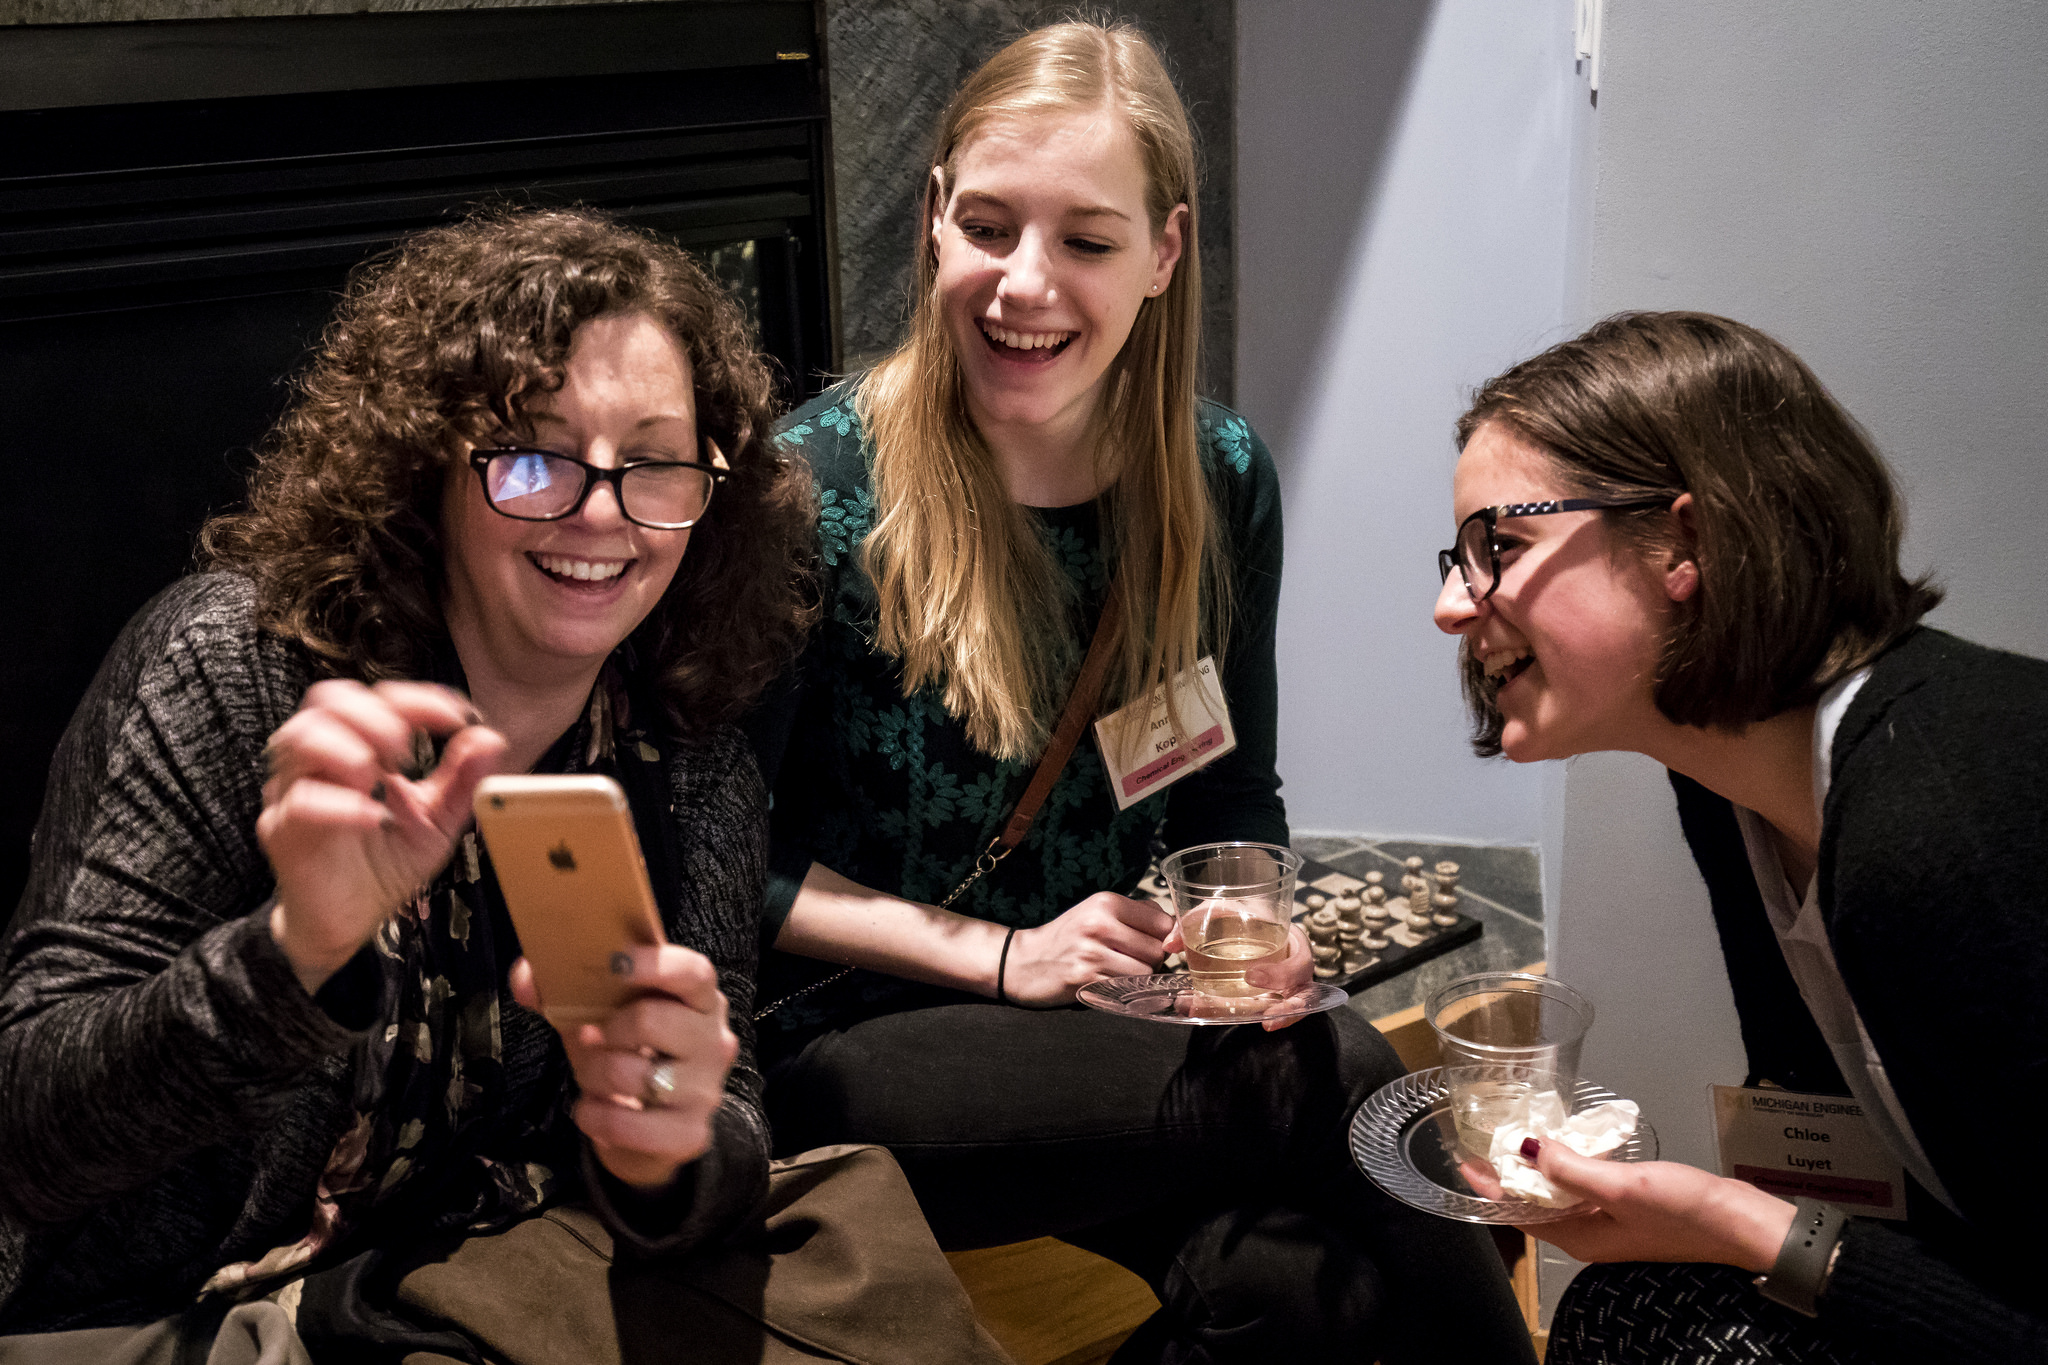 Smiling curly-haired woman shows two laughing females her phone screen